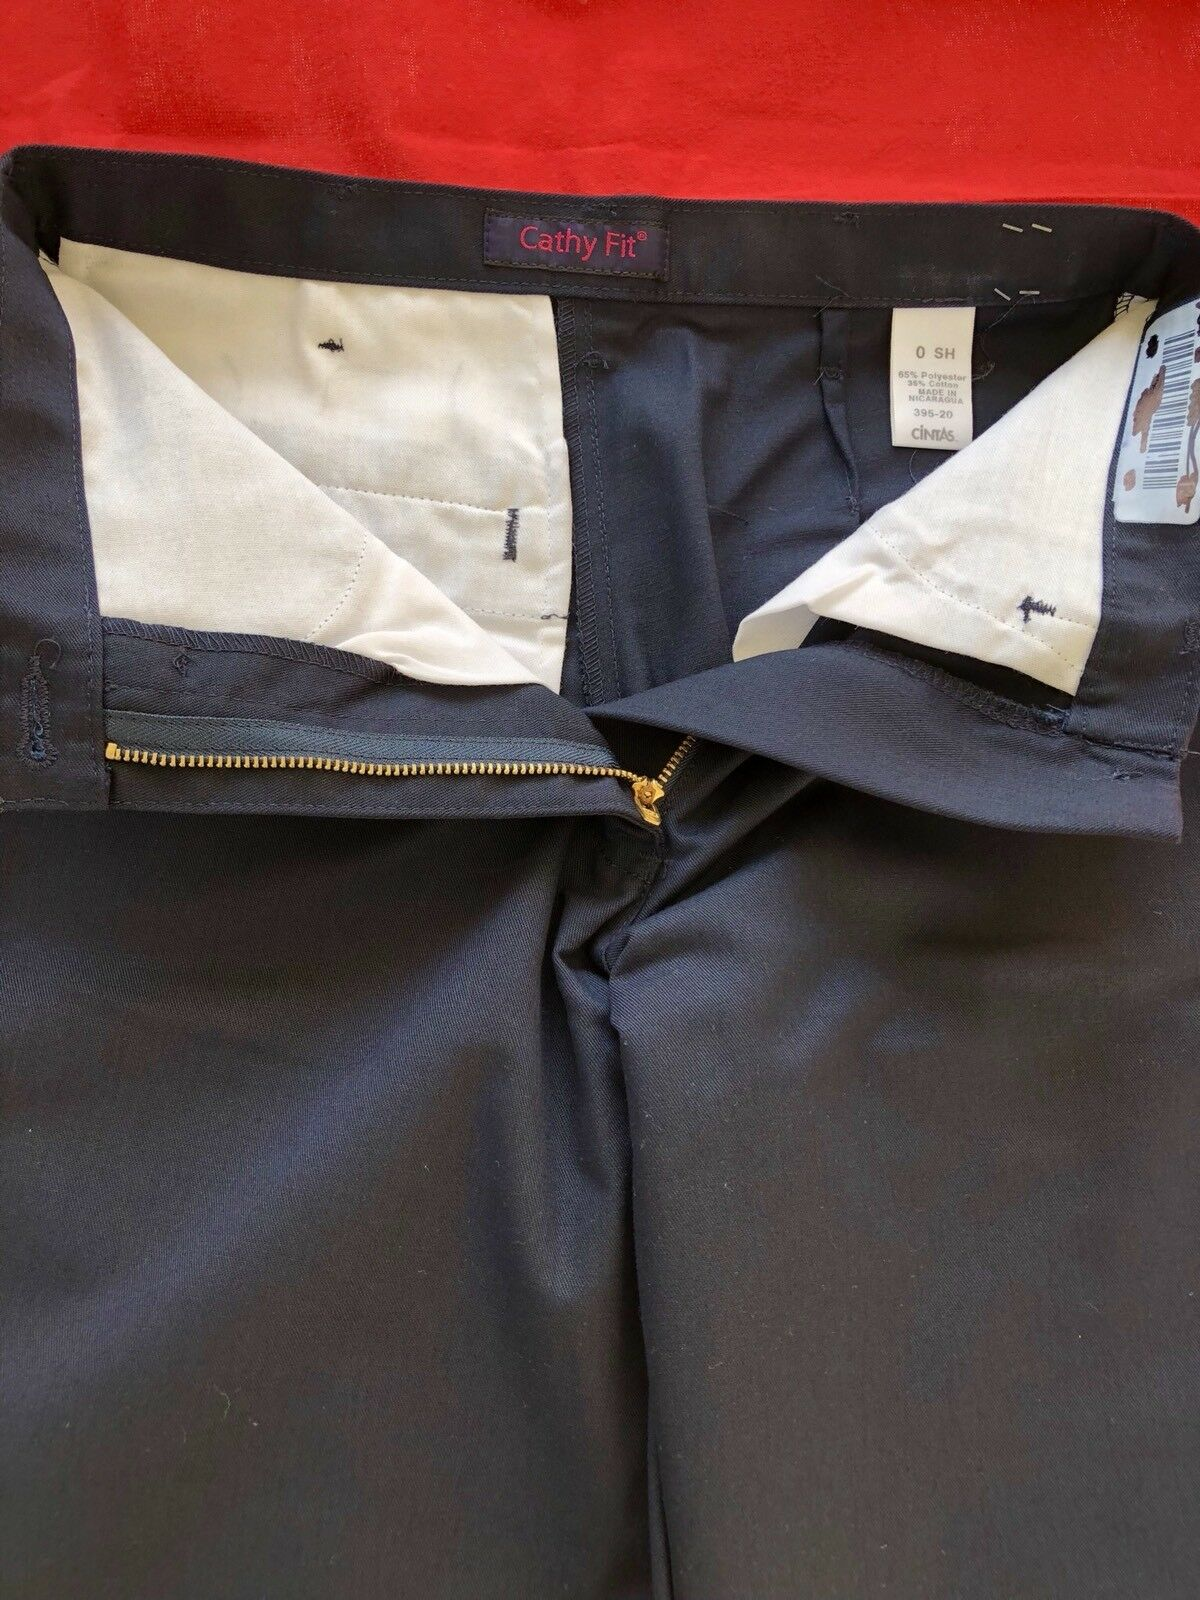 3 Womens Navy bluee Cintas Cathy Fit Work Pants Size 0 SHORT